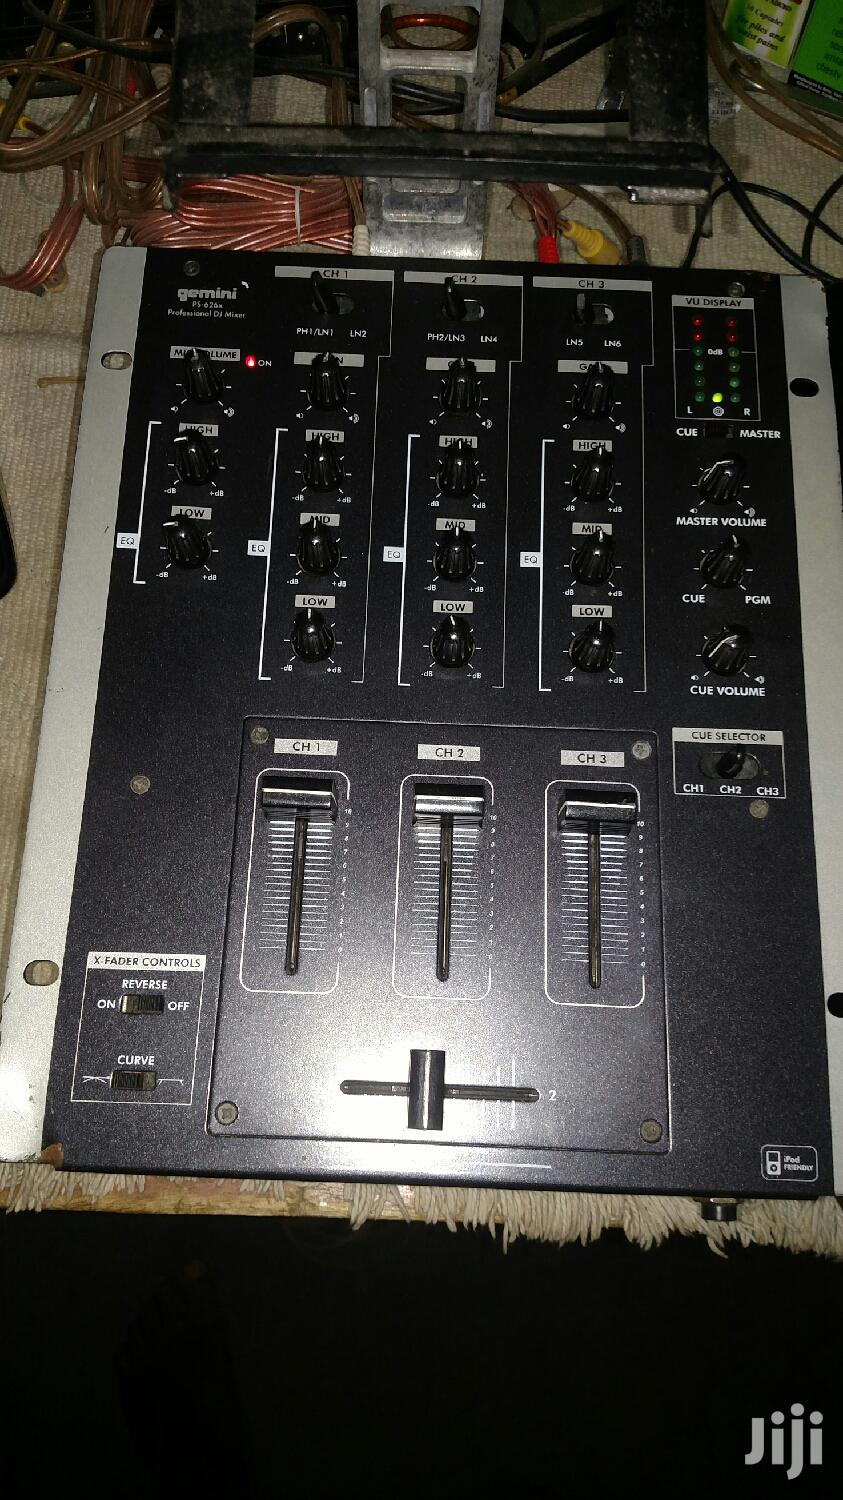 Gemini Ps 262, 3 Channel DJ Mixer | Audio & Music Equipment for sale in Achimota, Greater Accra, Ghana